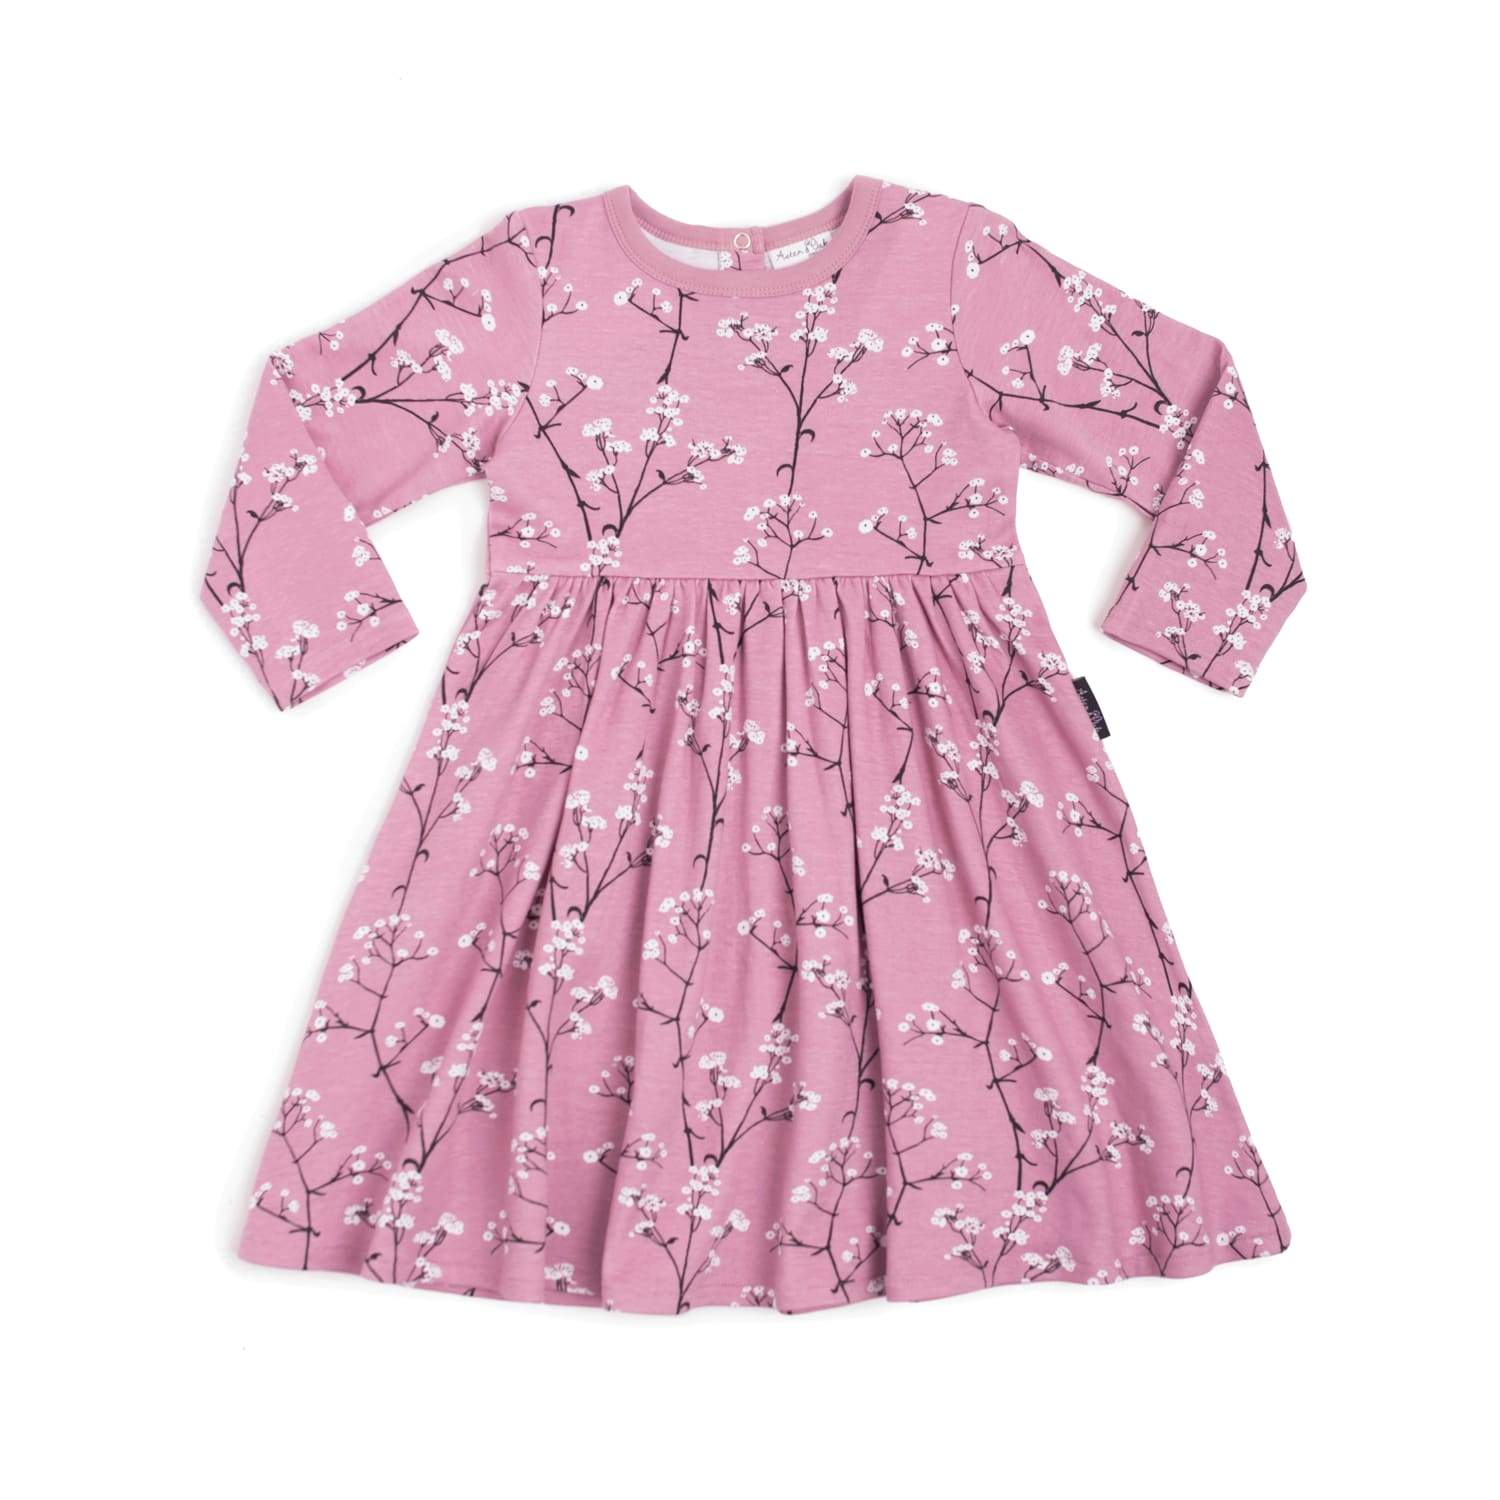 Aster & Oak Organic Cotton Baby's Breath Long Sleeve Dress - Naked Baby Eco Boutique